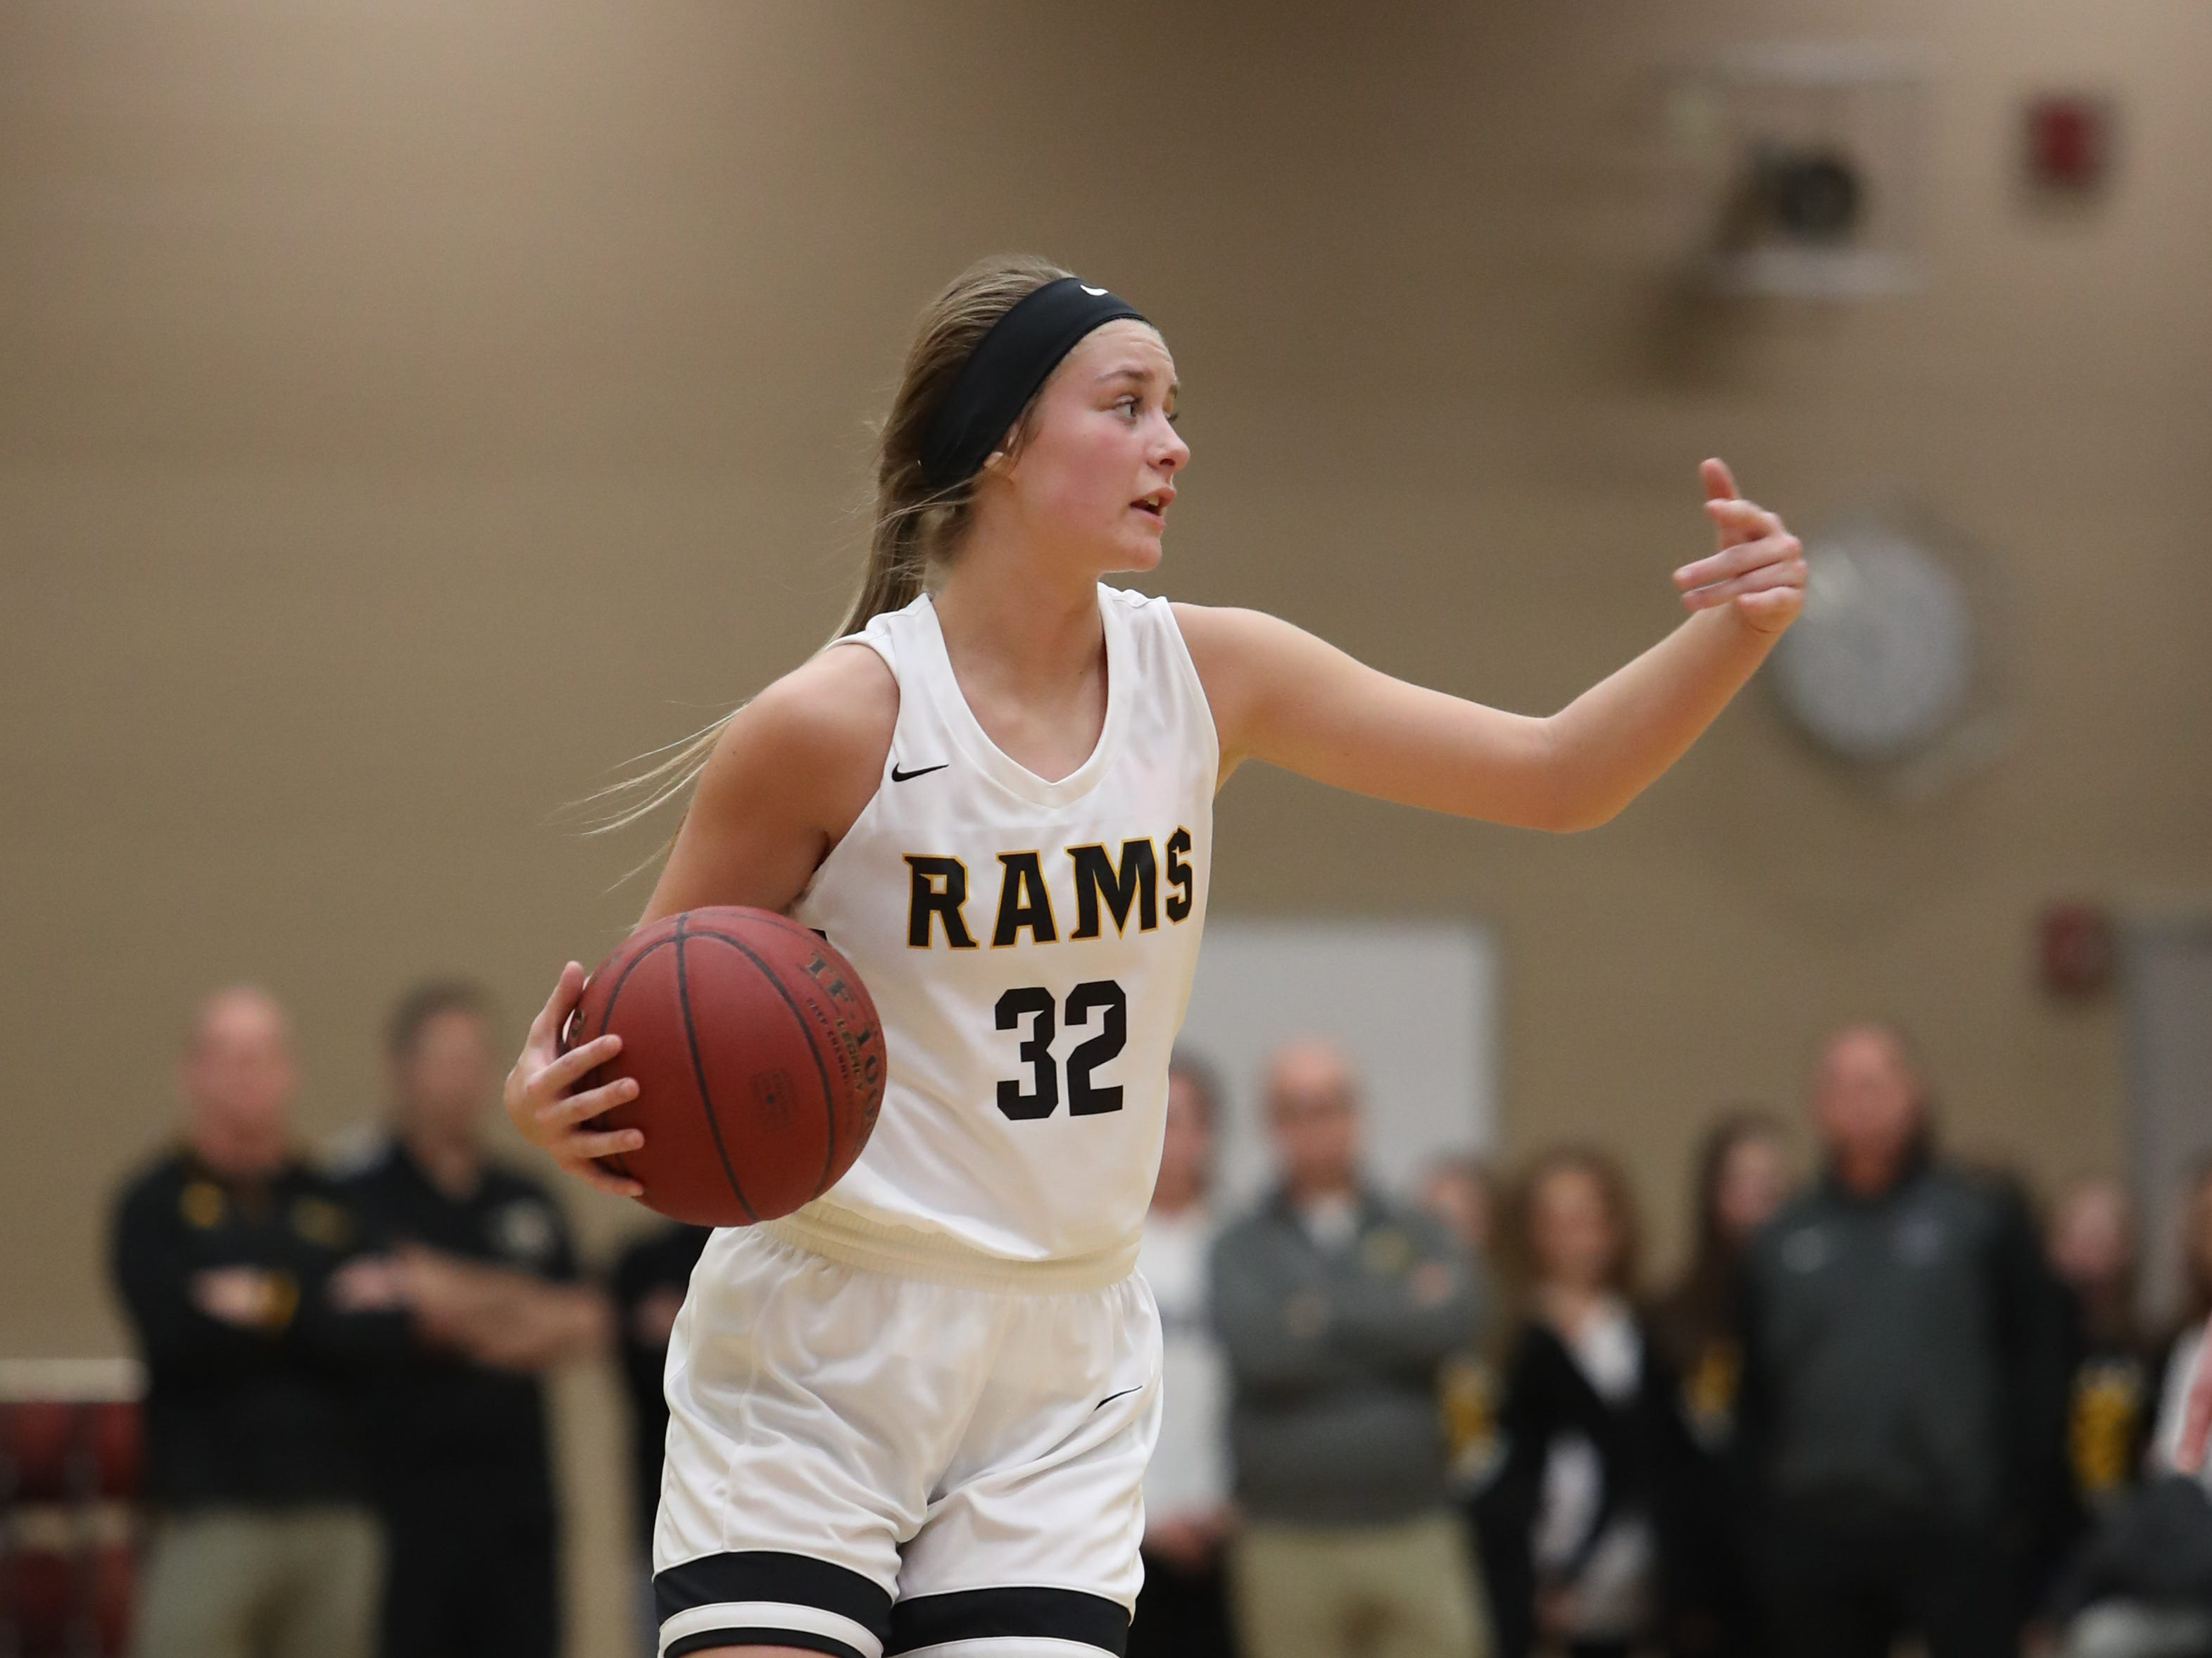 Southeast Polk Rams' Maggie McGraw (32) sets the offense against the Waukee Warriors during a game Feb. 1, 2019 at Southeast Polk High School.